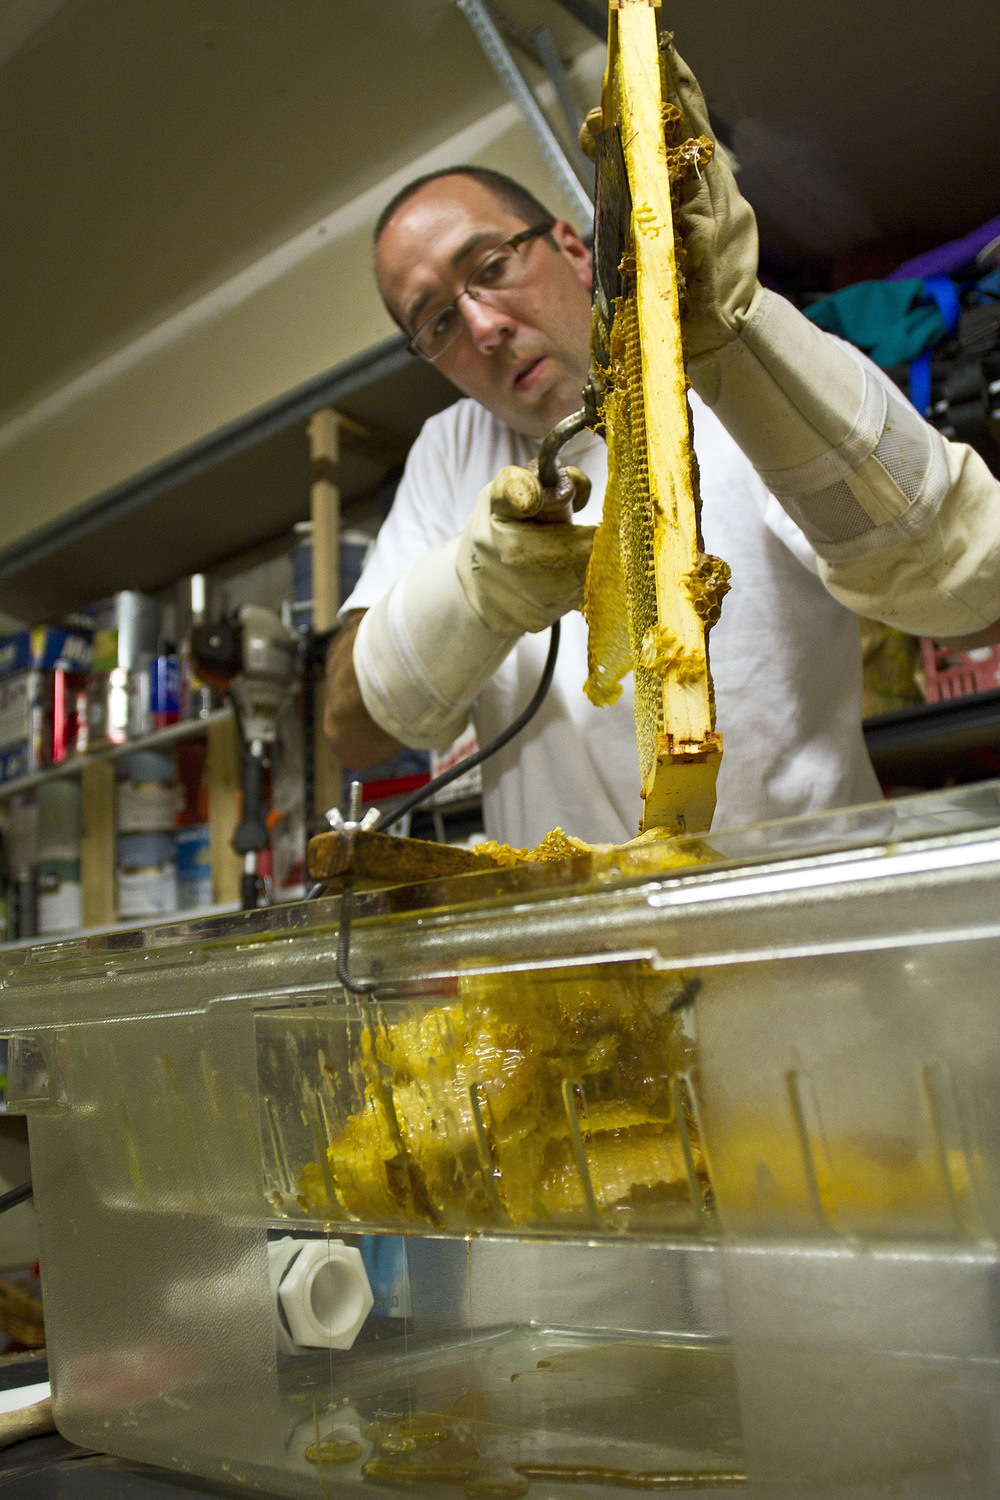 Allen Turnbull, a Bainbridge Island firefighter with two years of beekeeping experience, uncaps a frame of honey comb from one of his hives with a heated knife.